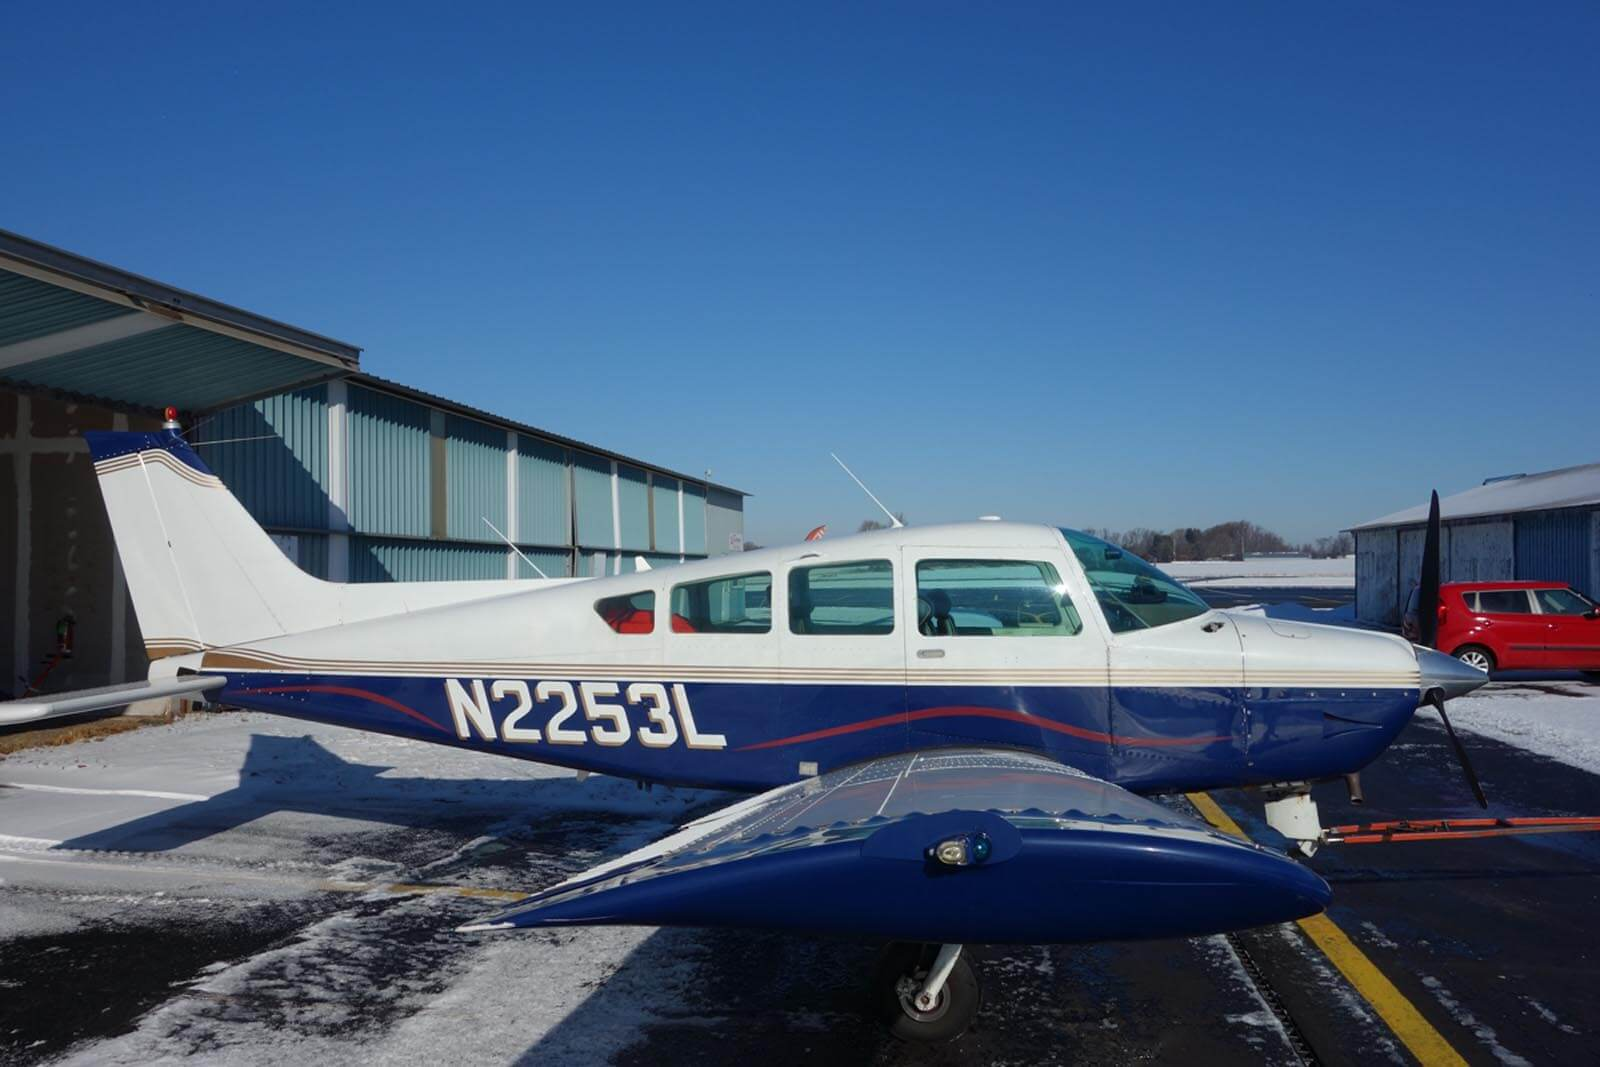 1976 Beech C24R Sierra - FOR SALE at Princeton Airport